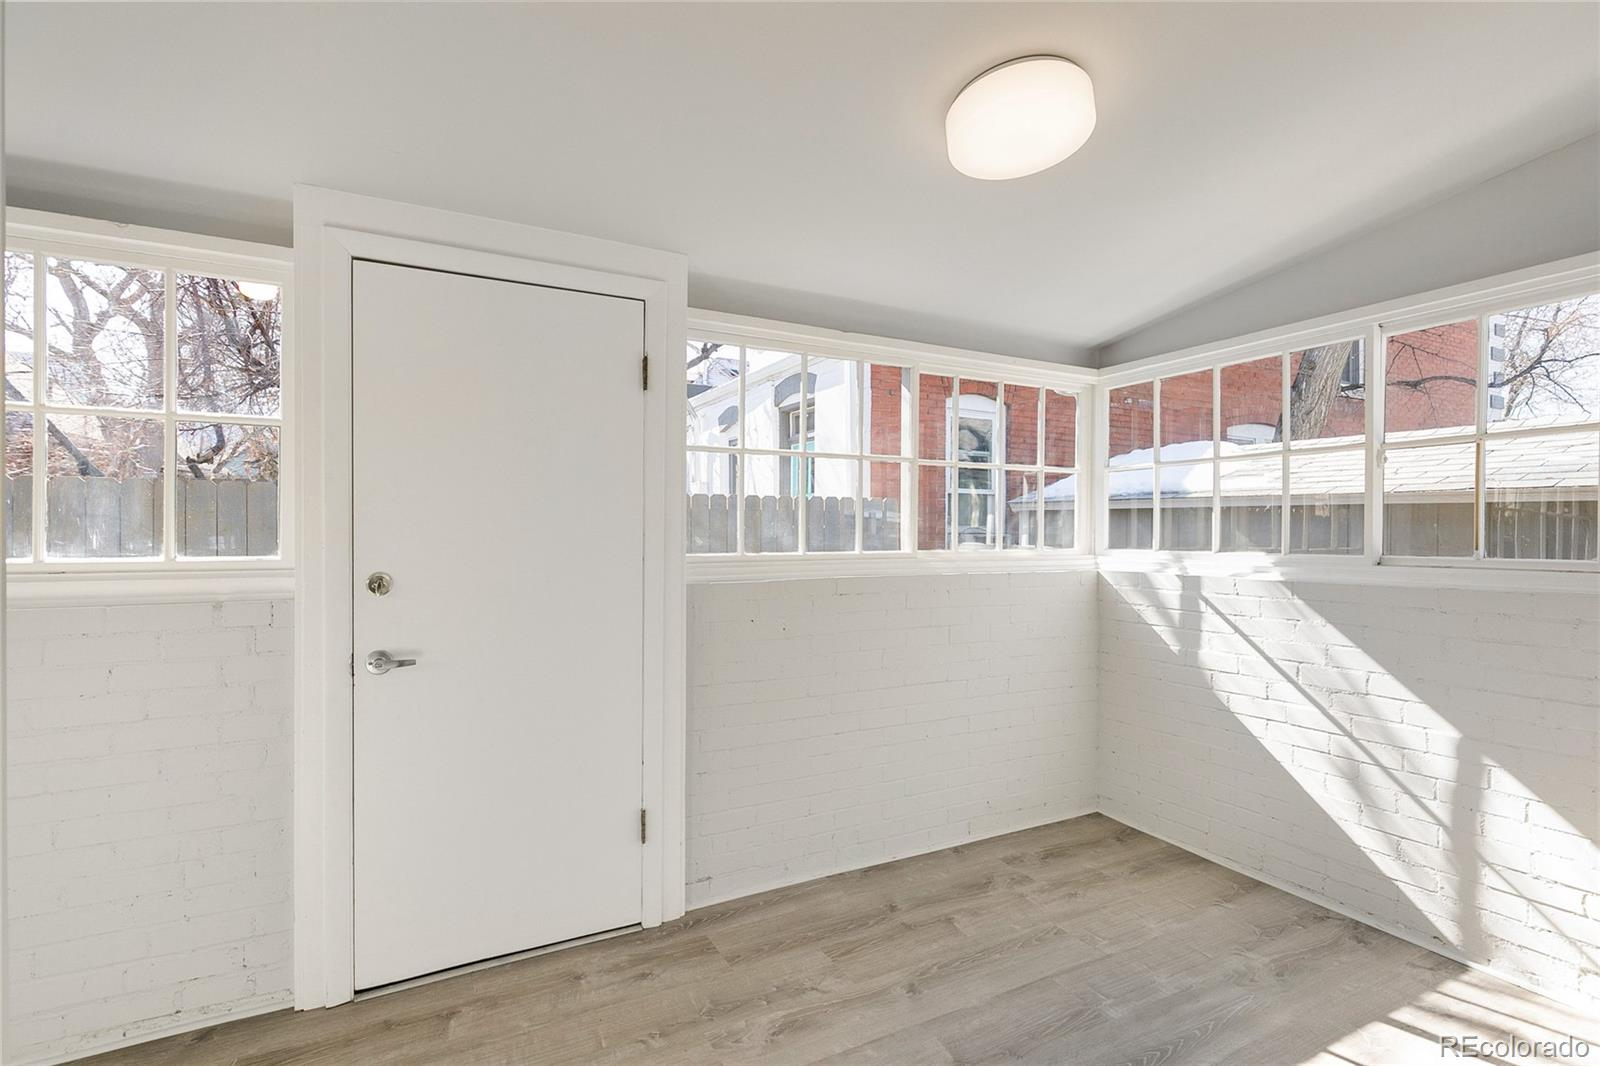 MLS# 4666448 - 12 - 308 W 4th Avenue, Denver, CO 80223